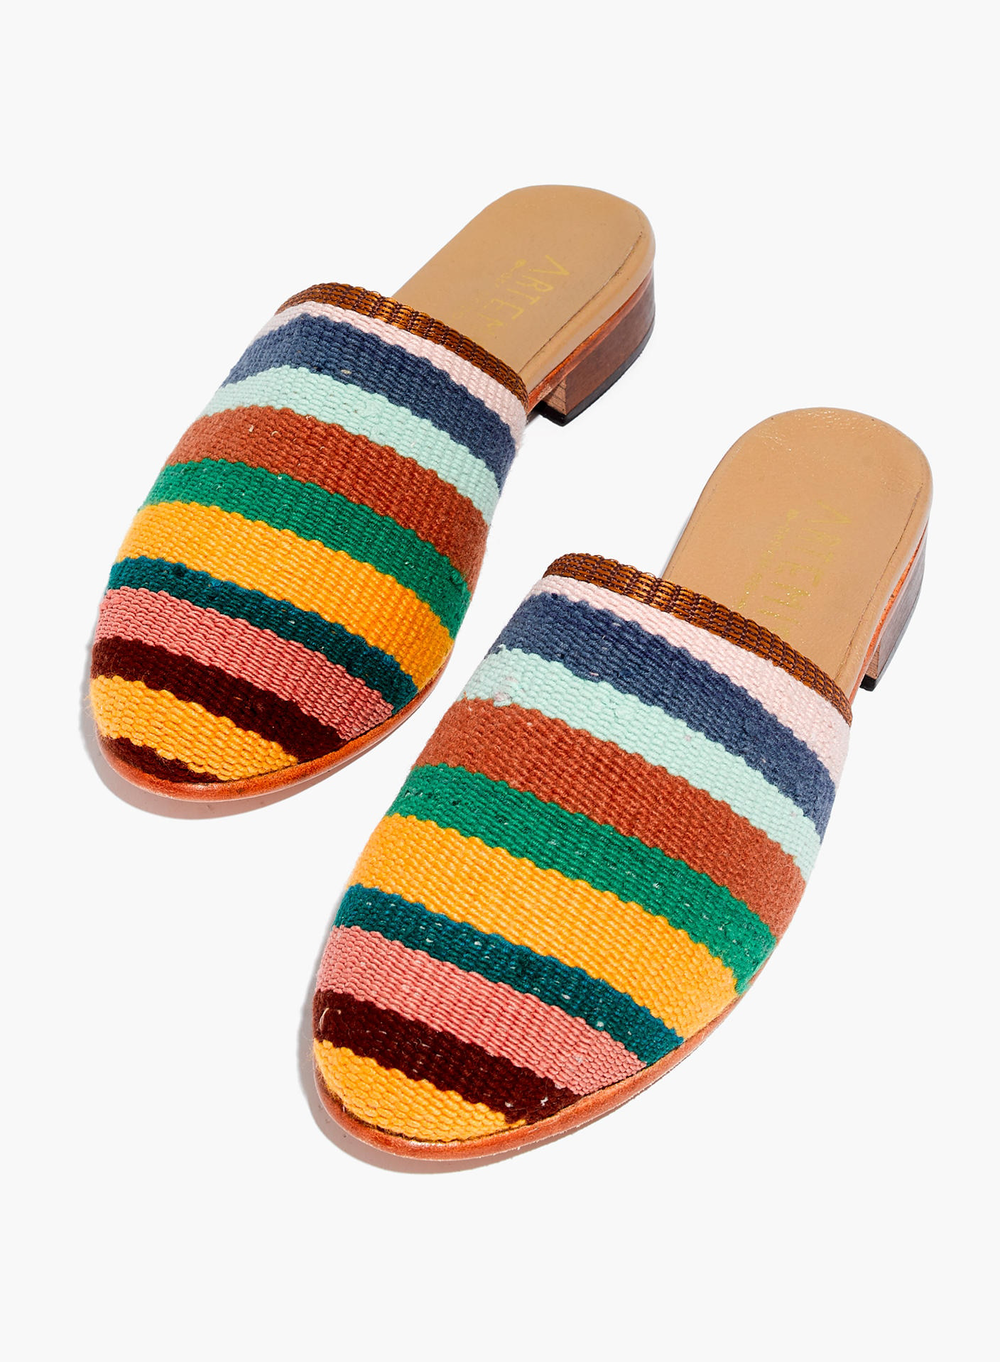 18 artemis-and-co-slides-from-madewell.png